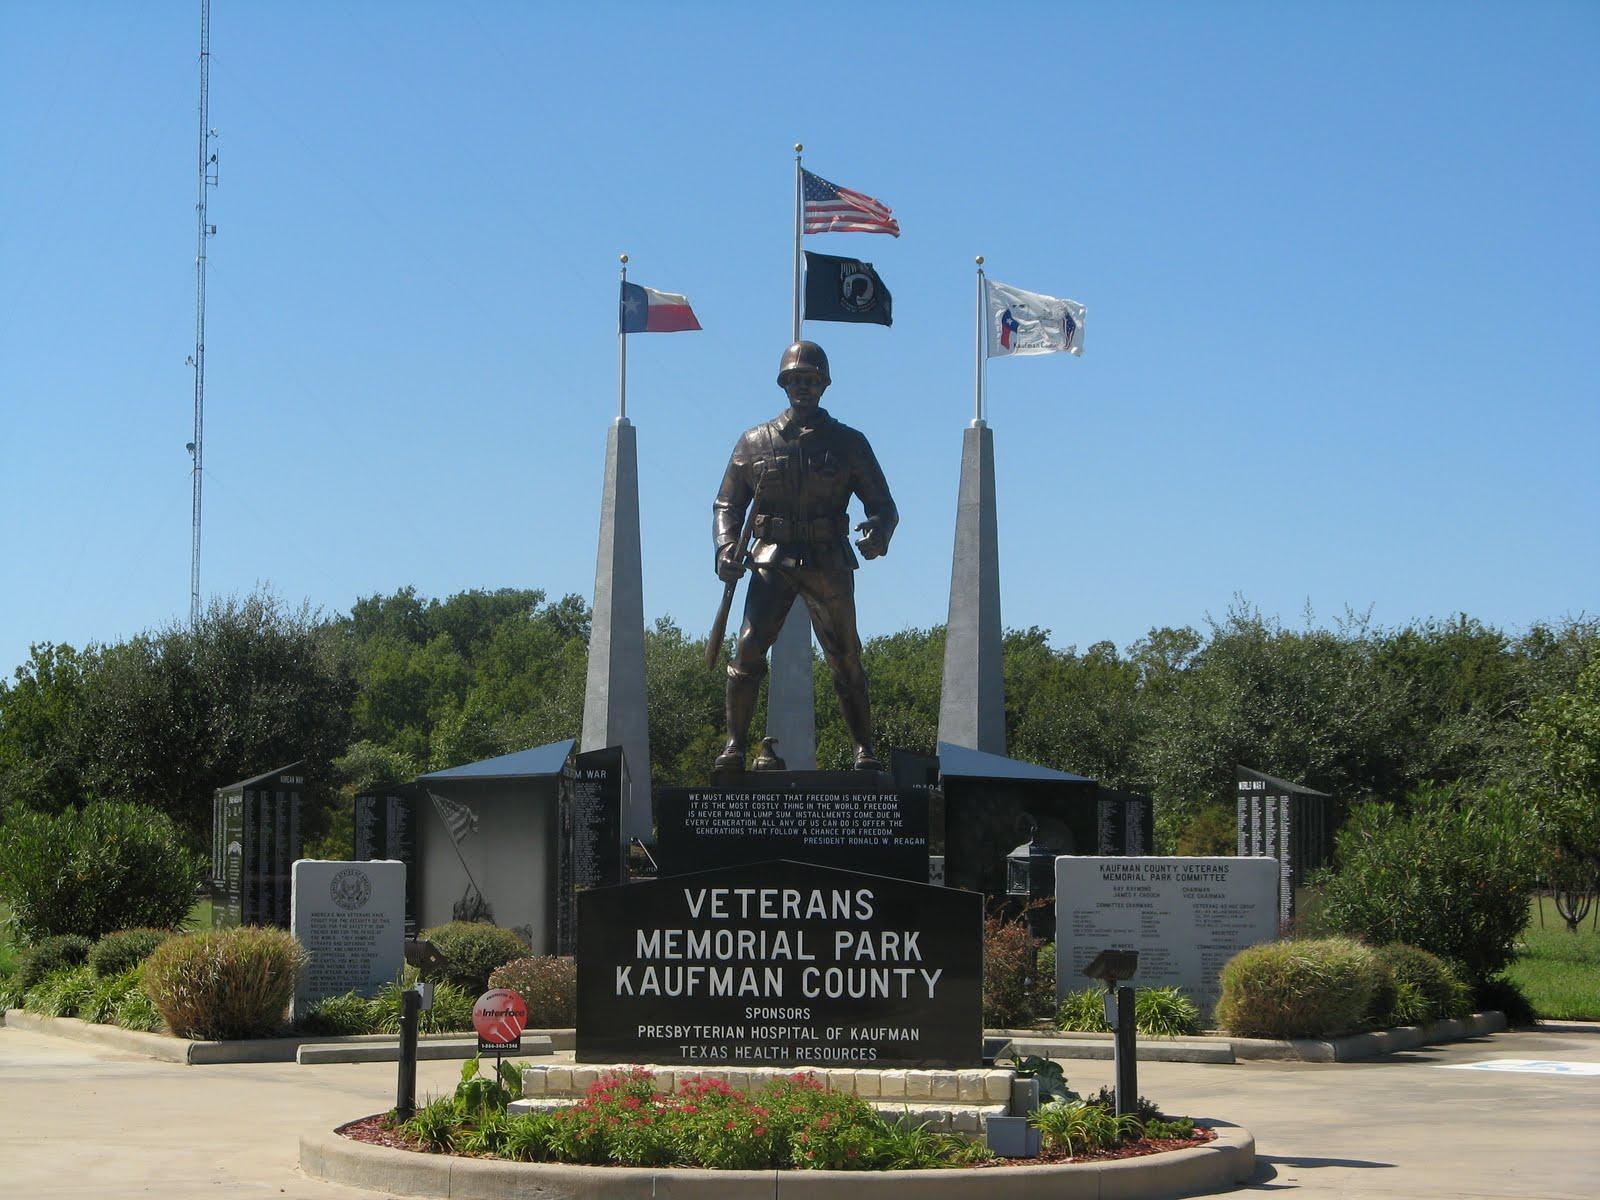 War memorial commemoration travel blog texas my home state - Valley memorial gardens mission tx ...